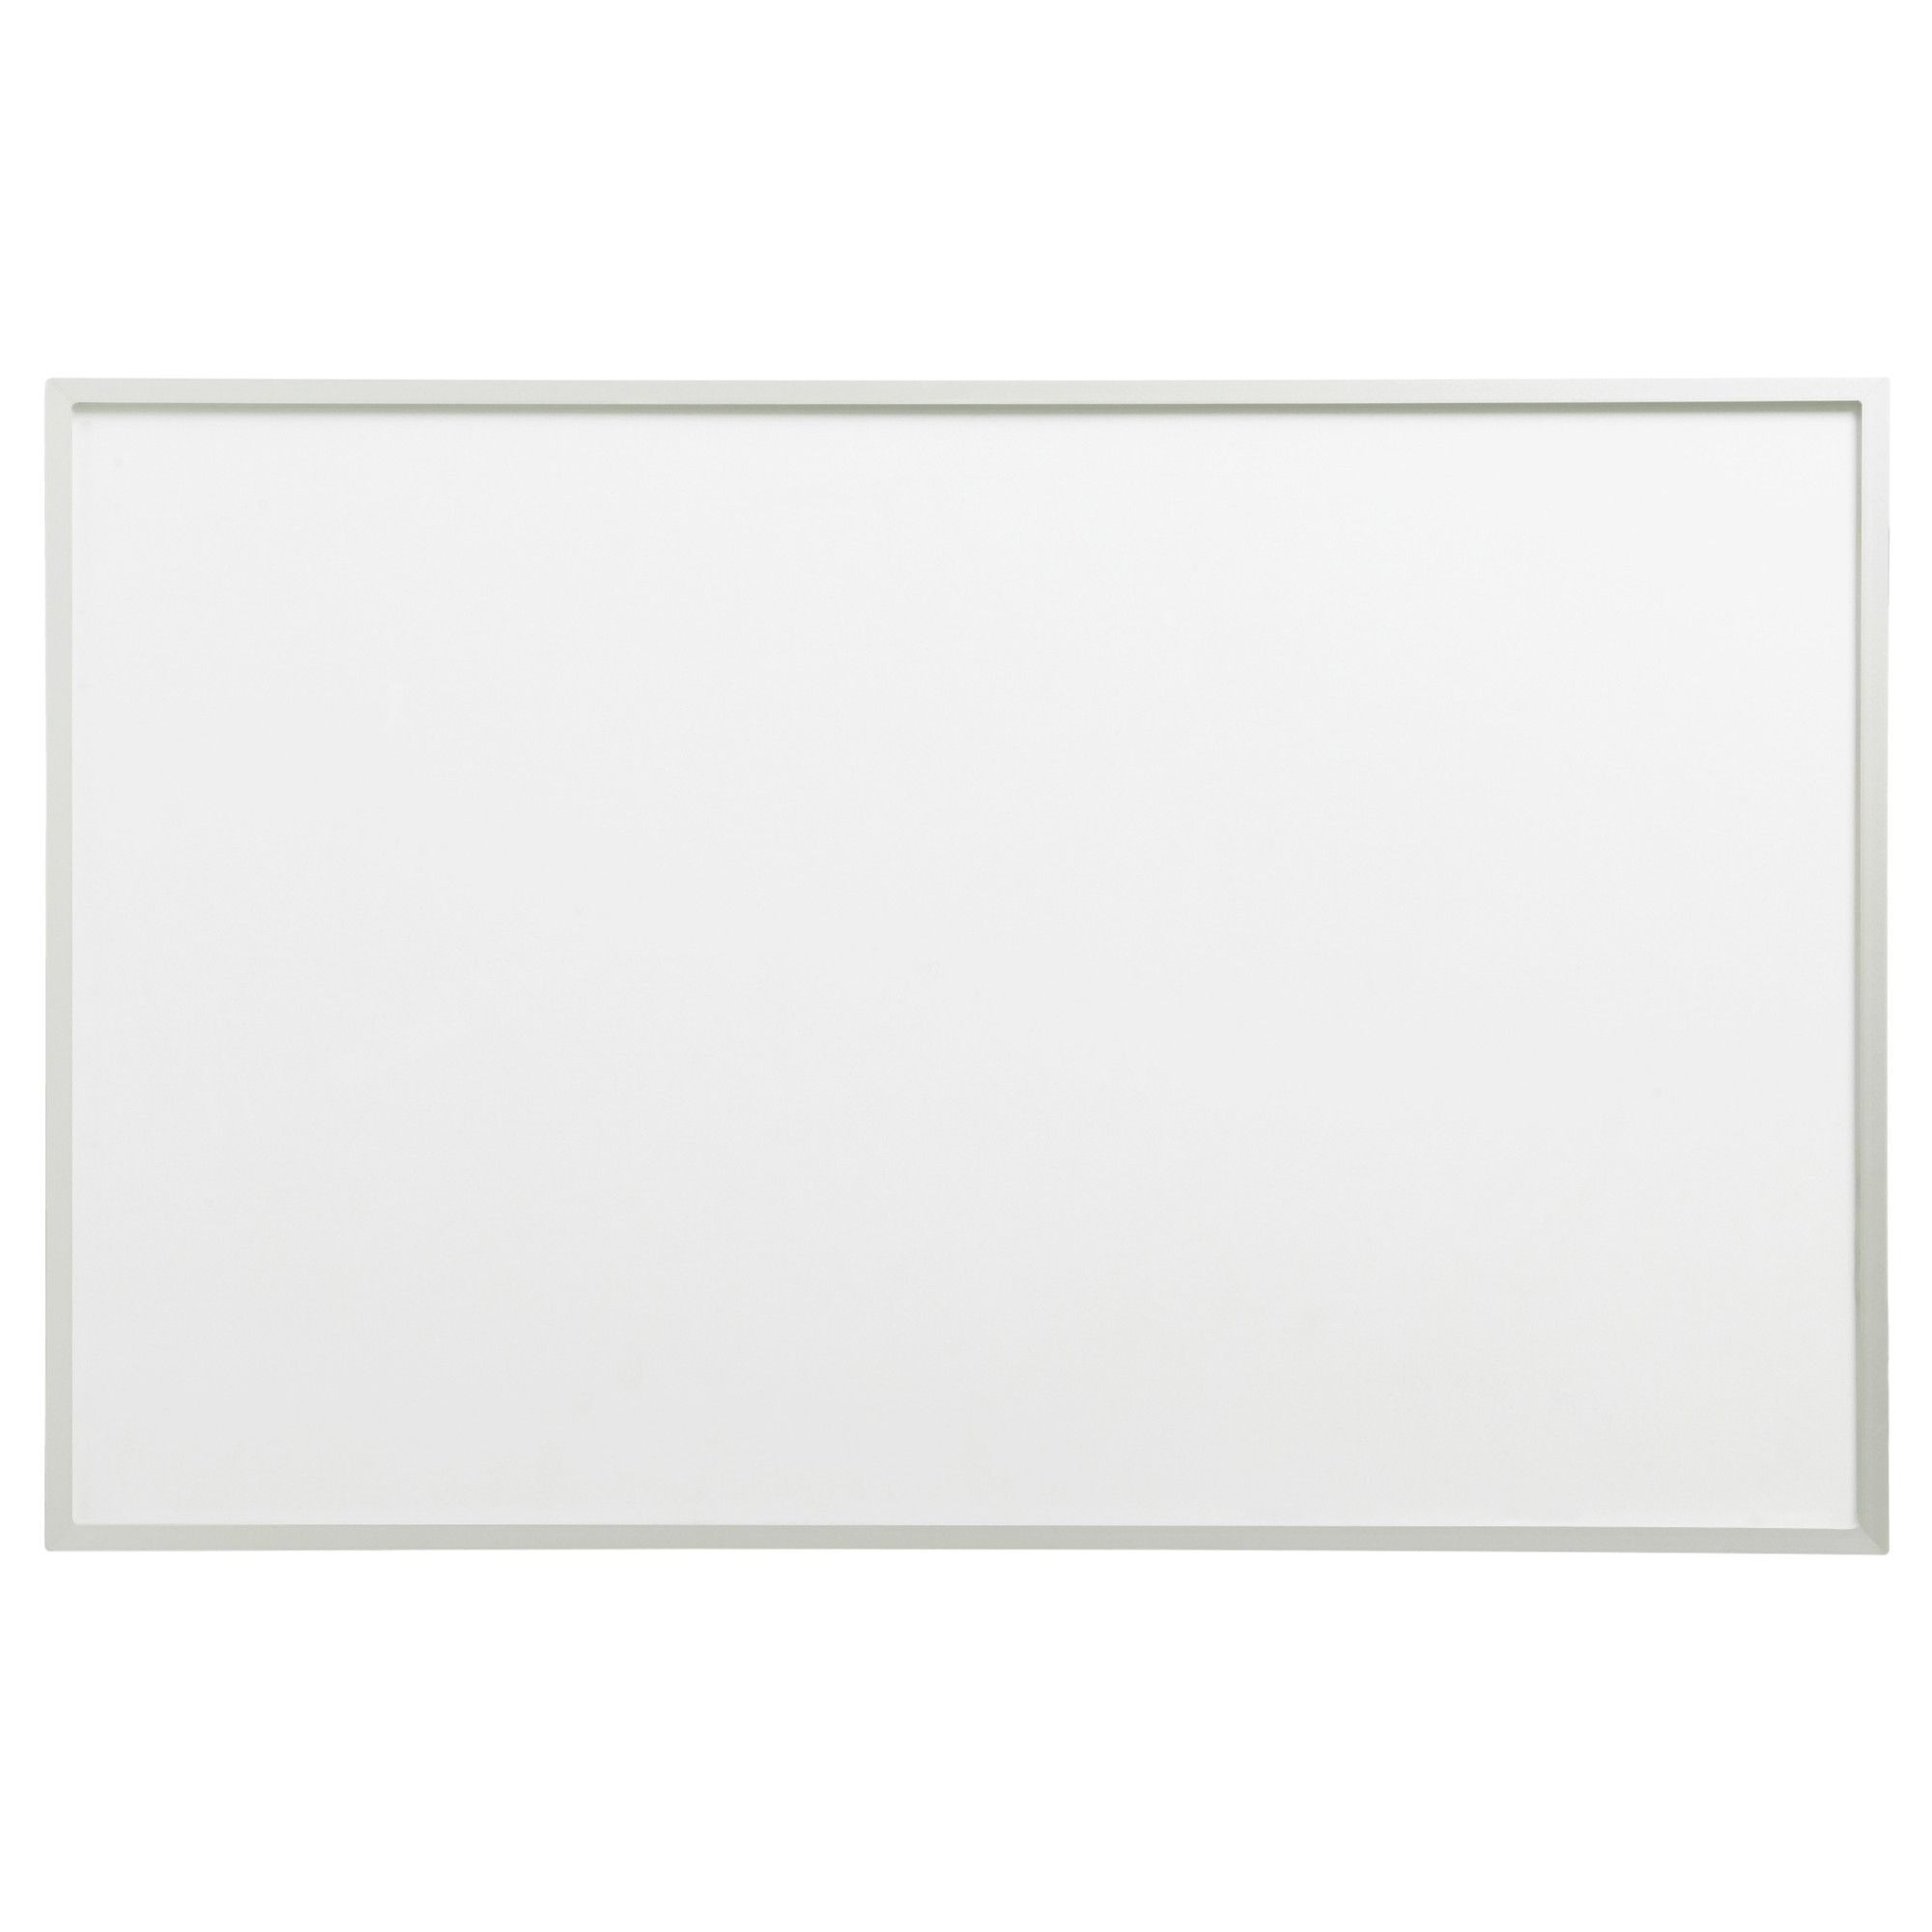 Us Furniture And Home Furnishings Magnetic White Board